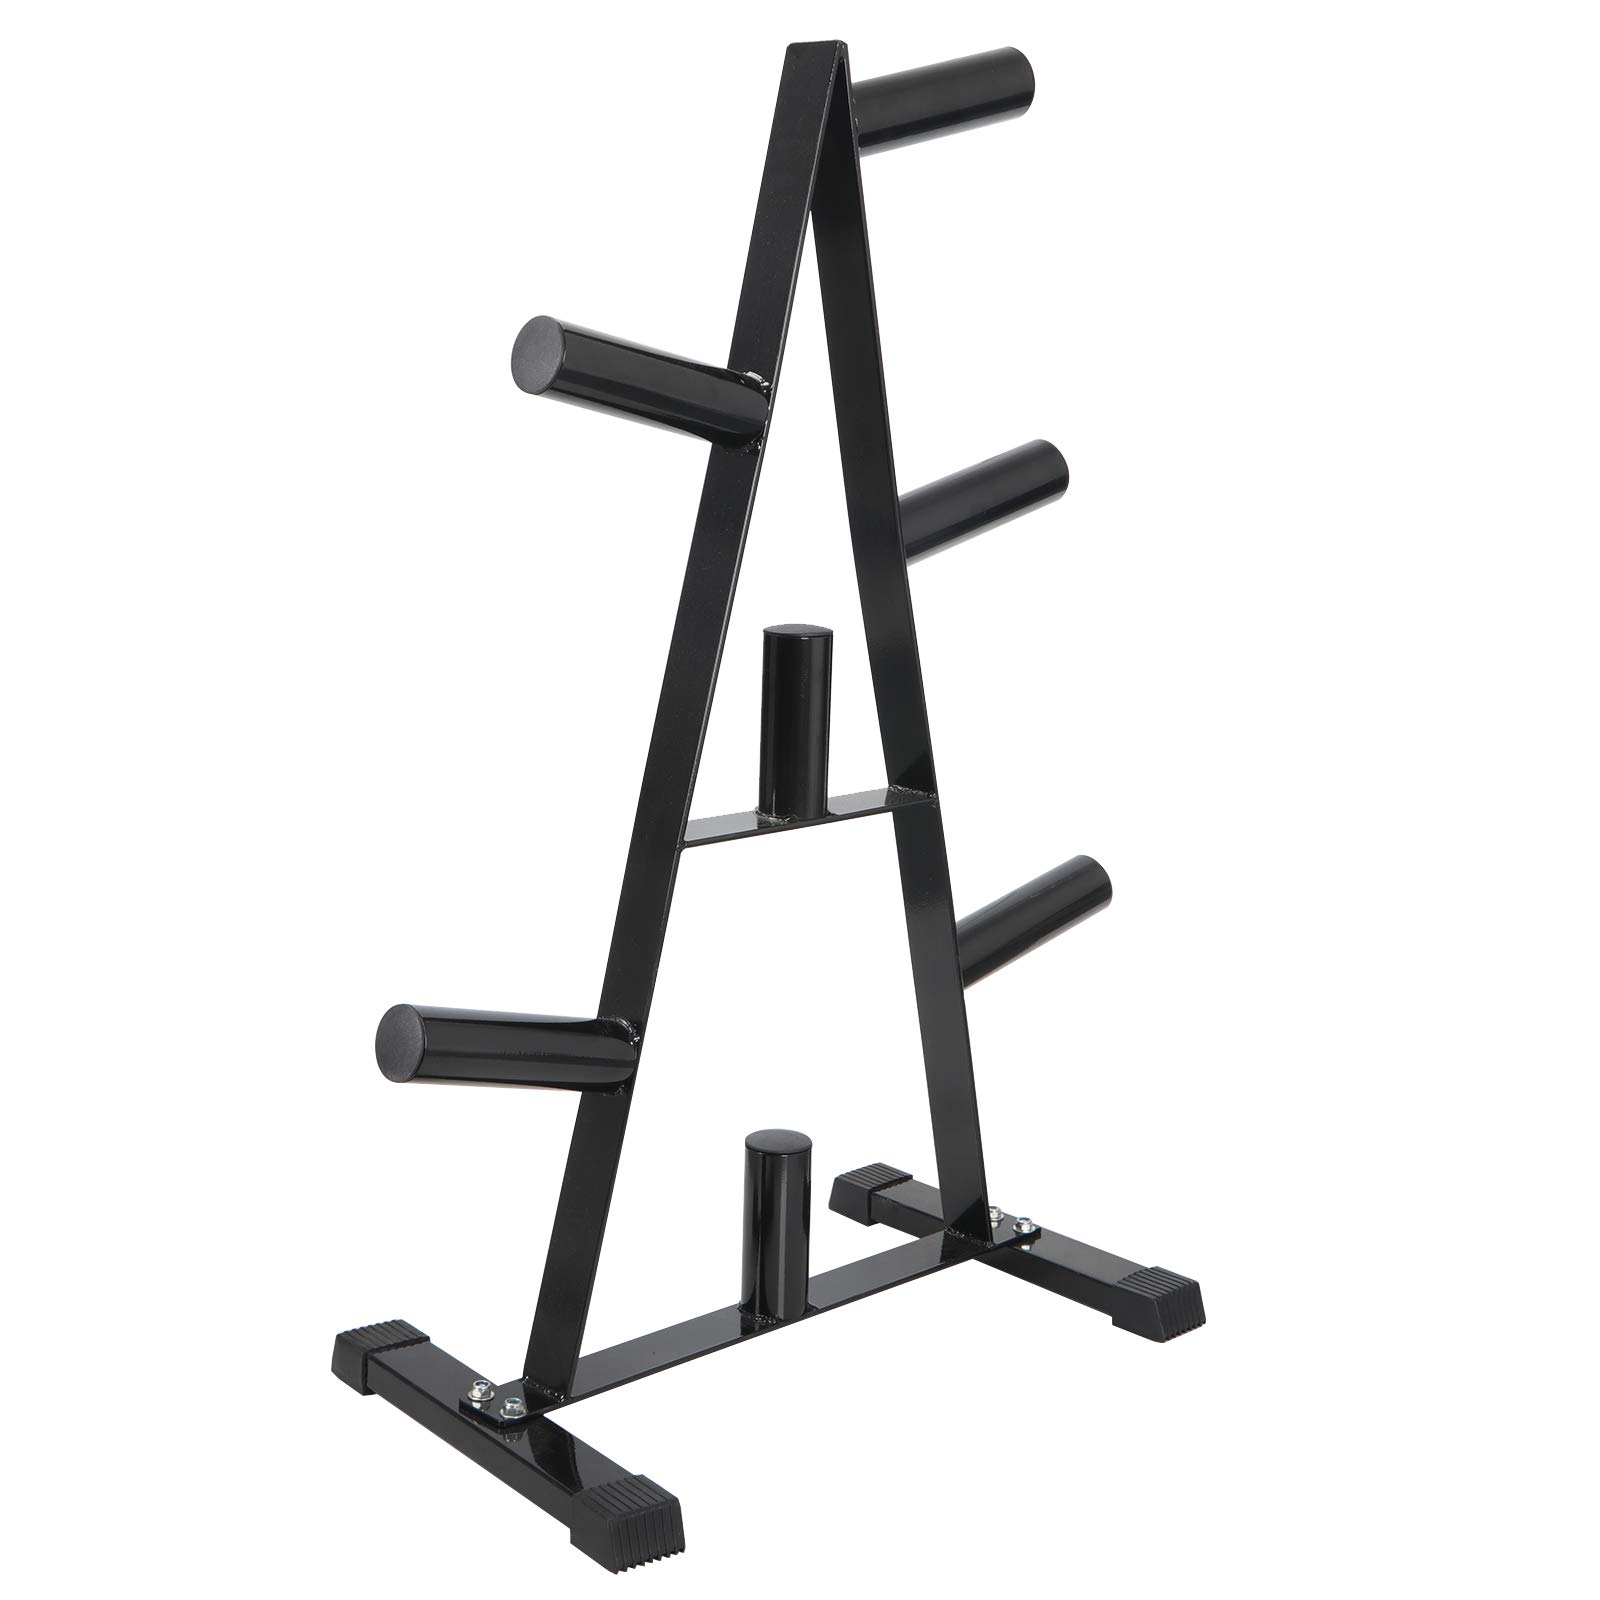 HomGarden 2-Inch Standard Barbell Plate Rack Gym Gear Dumbbell Racks Triangle Olympic Plate Tree Holder 500 lbs Weight Capacity